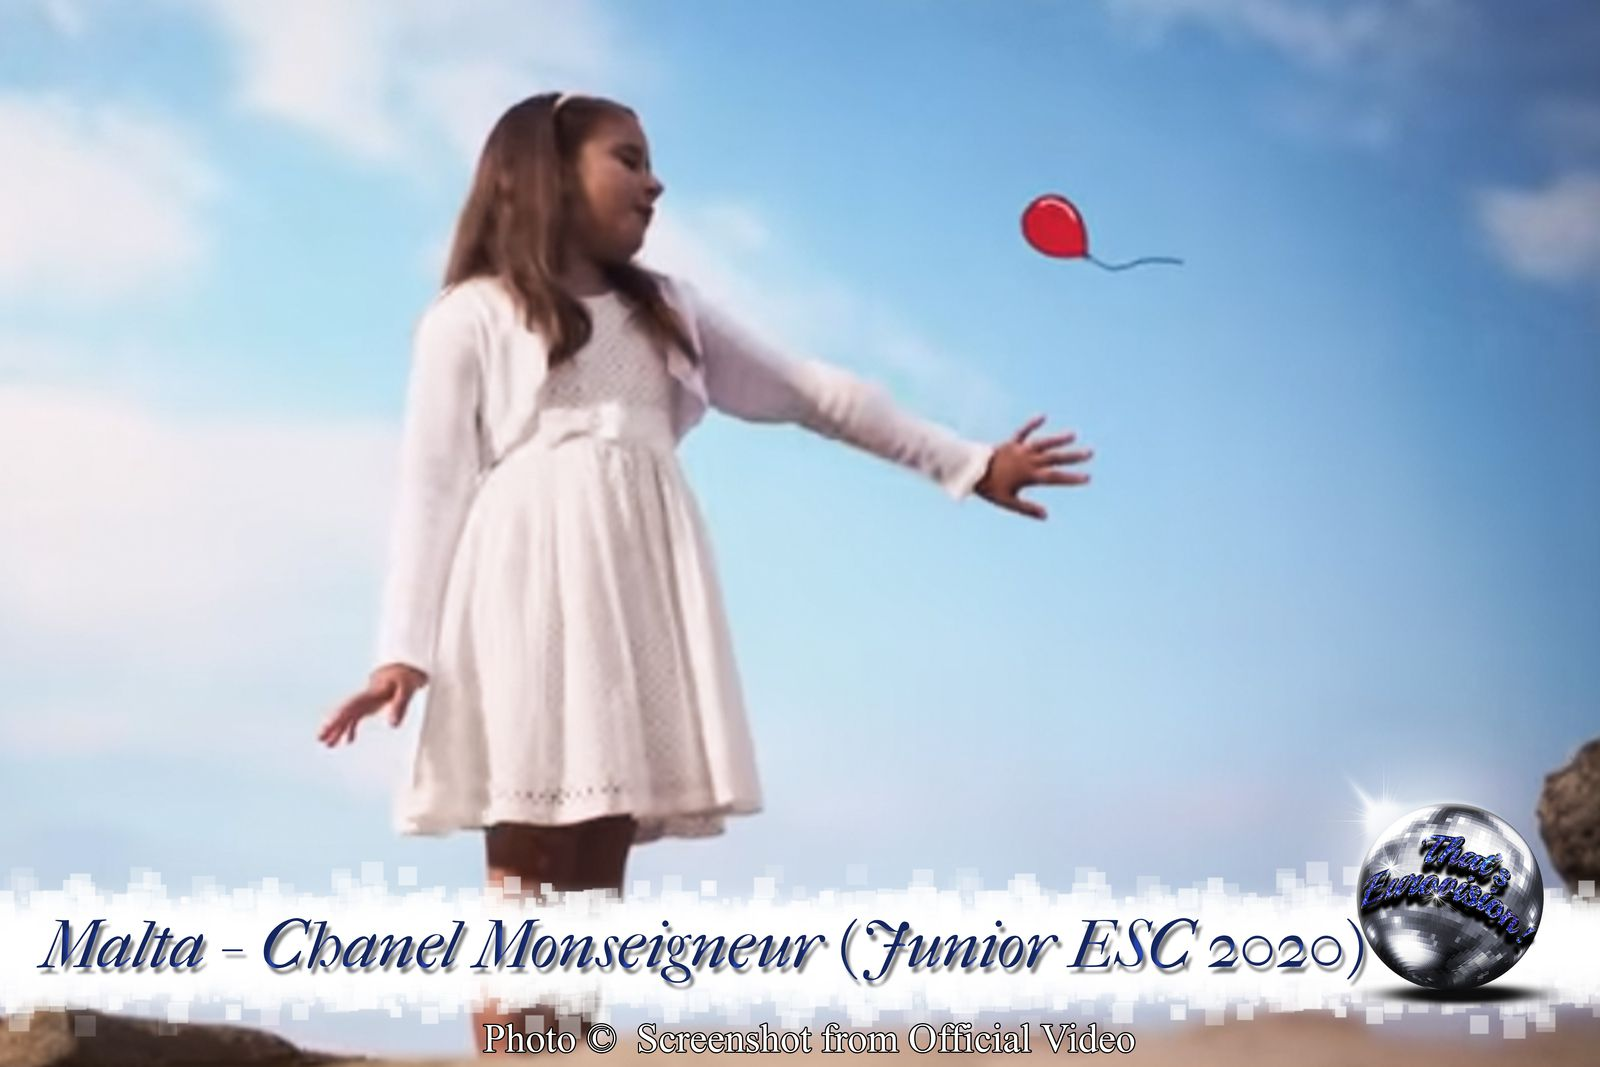 Malta - Chanel Monseigneur - Chasing Sunsets (Junior ESC 2020)